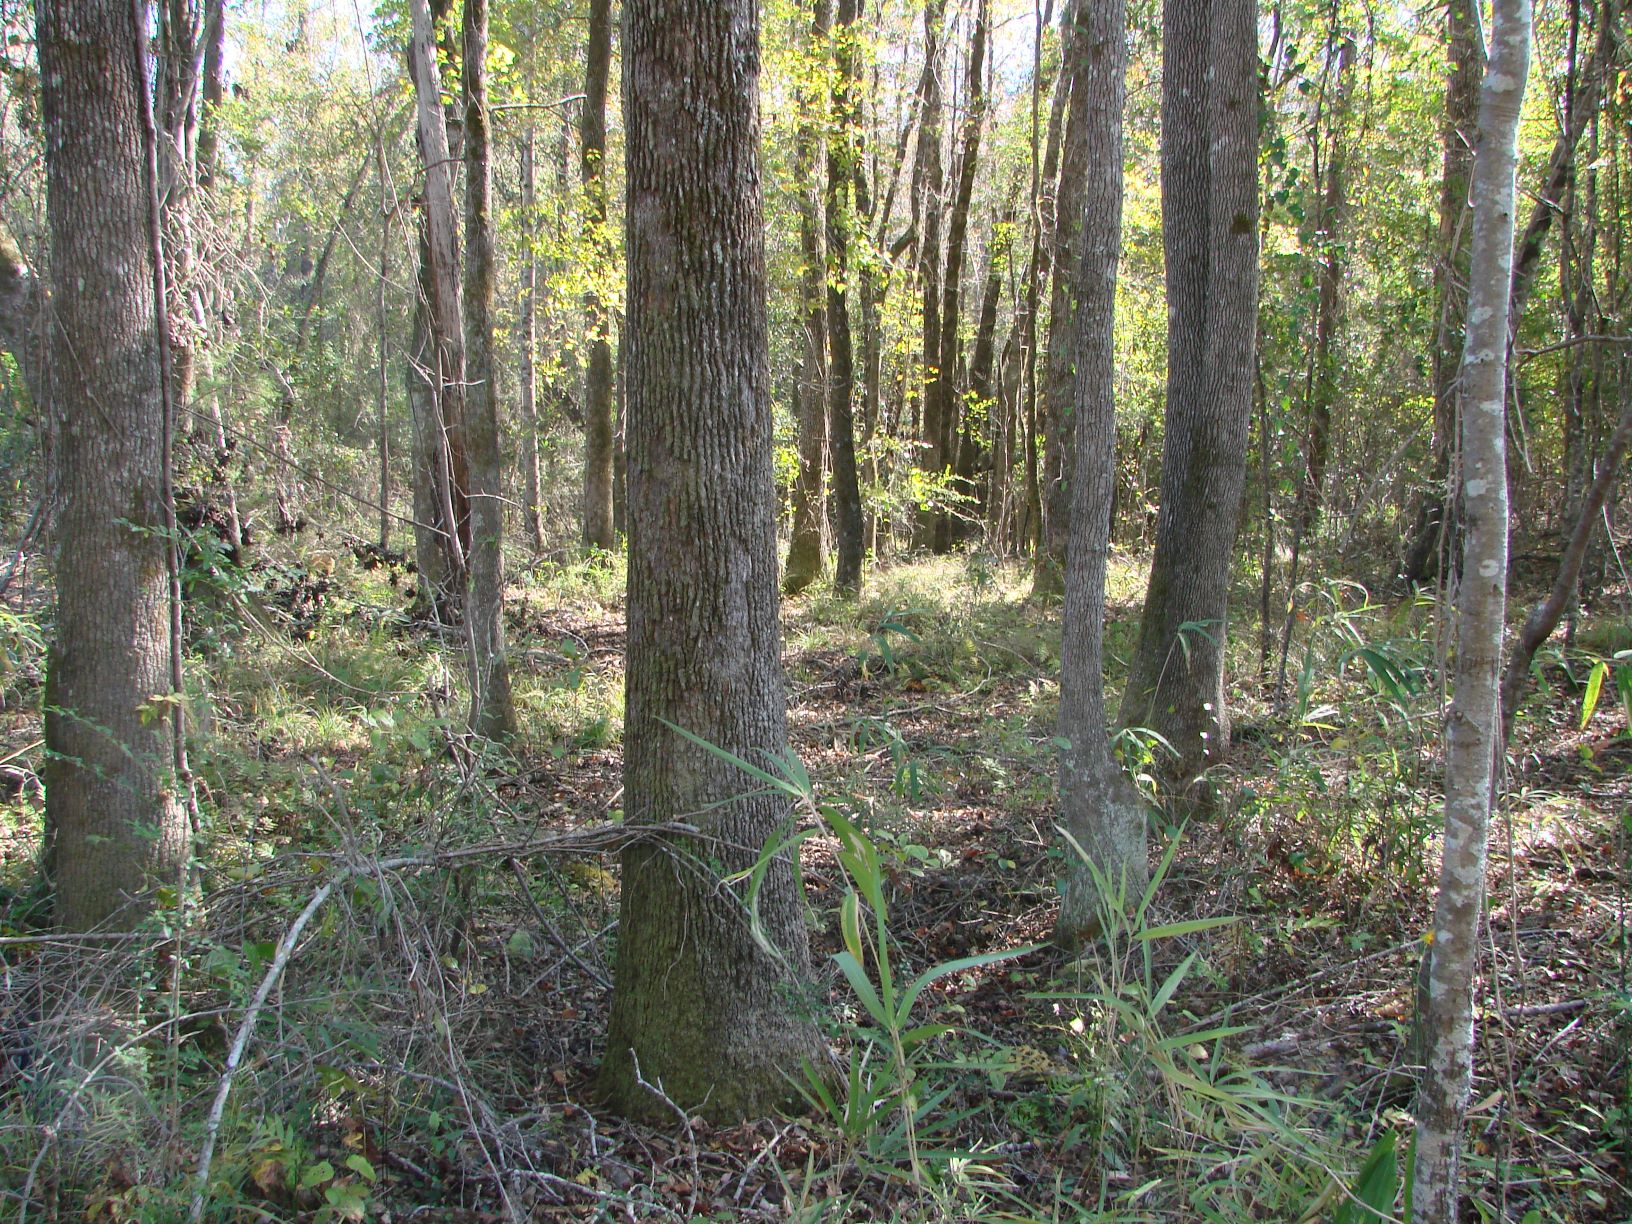 There are 63 acres of mature hardwood timber like this along Ailey Branch & other areas